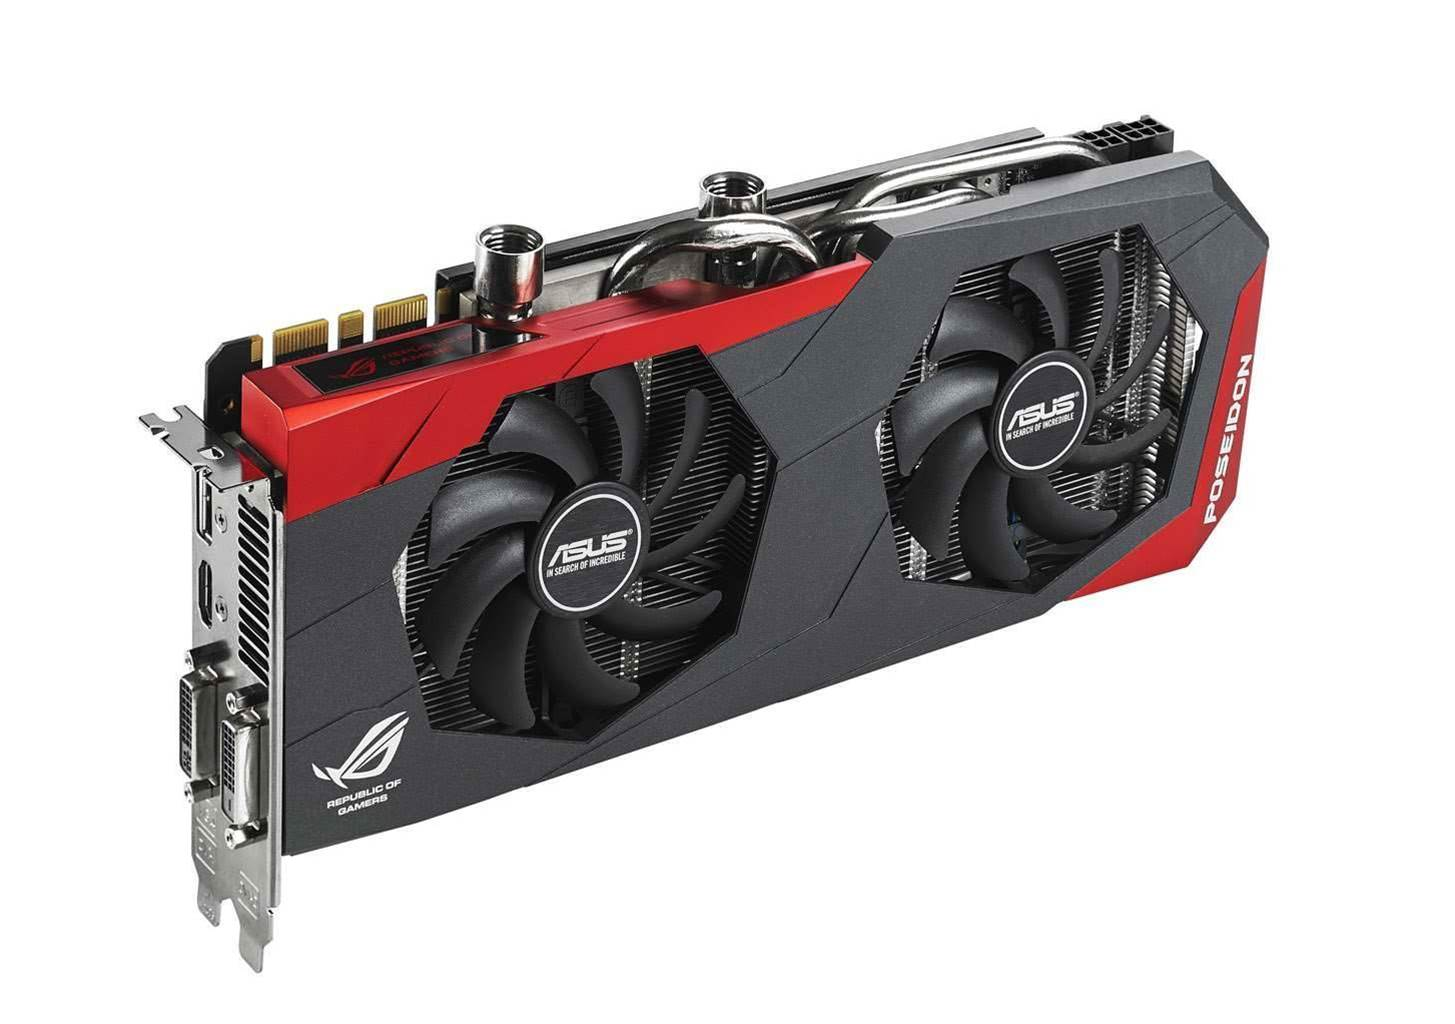 ASUS announce new water-cooled ROG VGA card - the Poseidon!